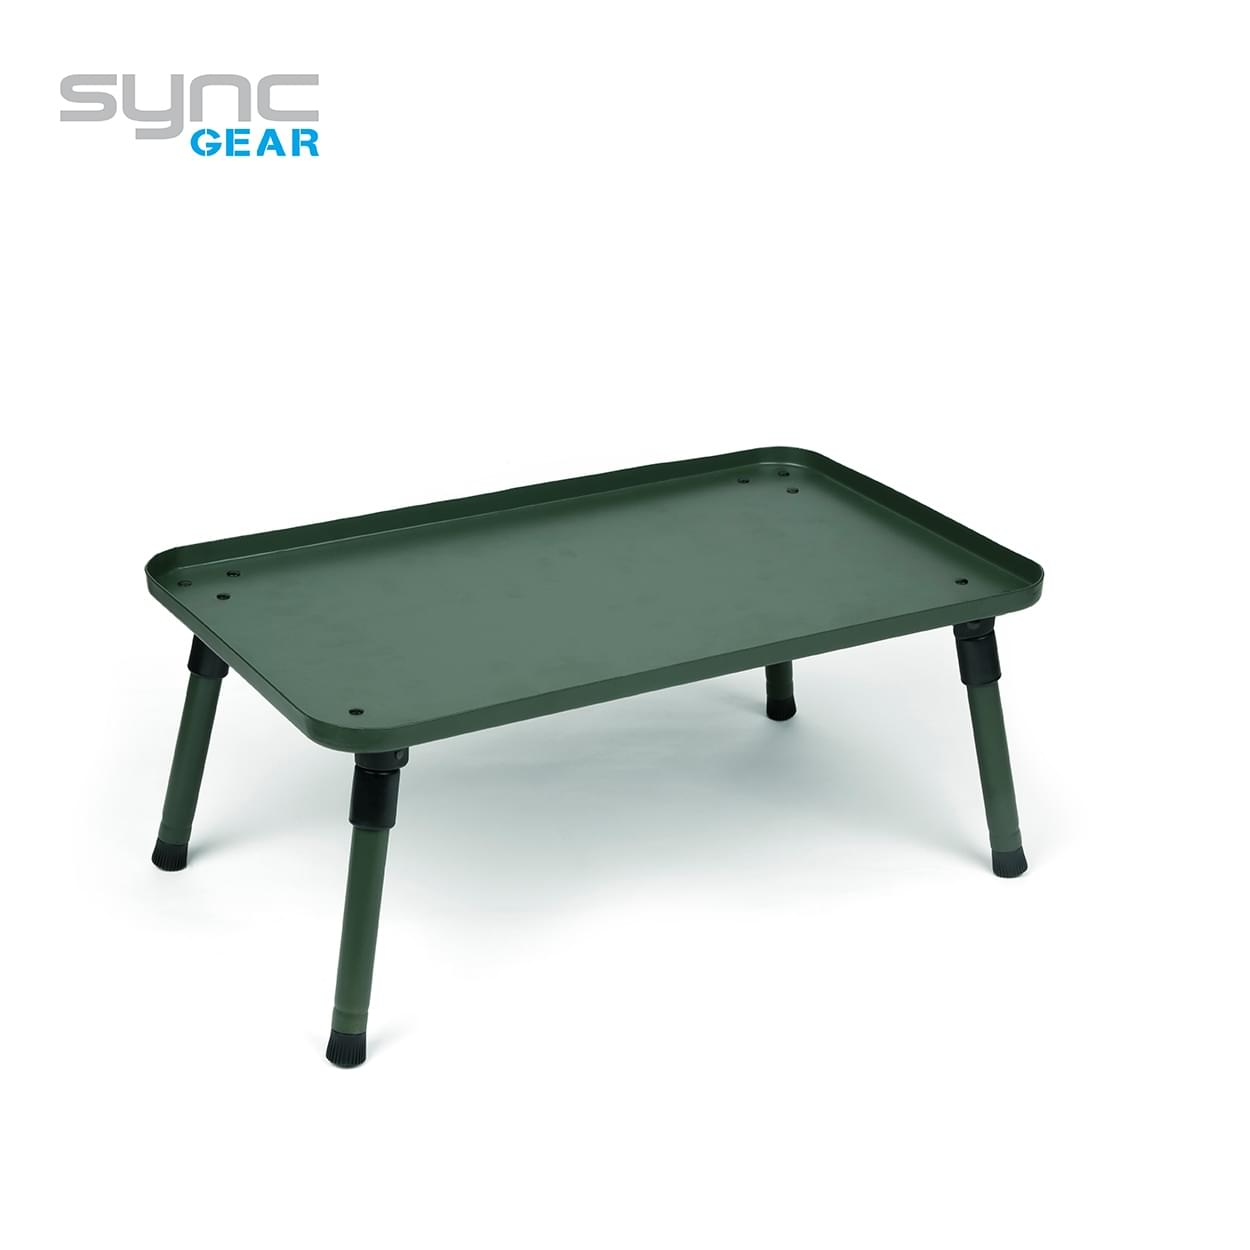 Shimano Sync Gear Bivvy Table